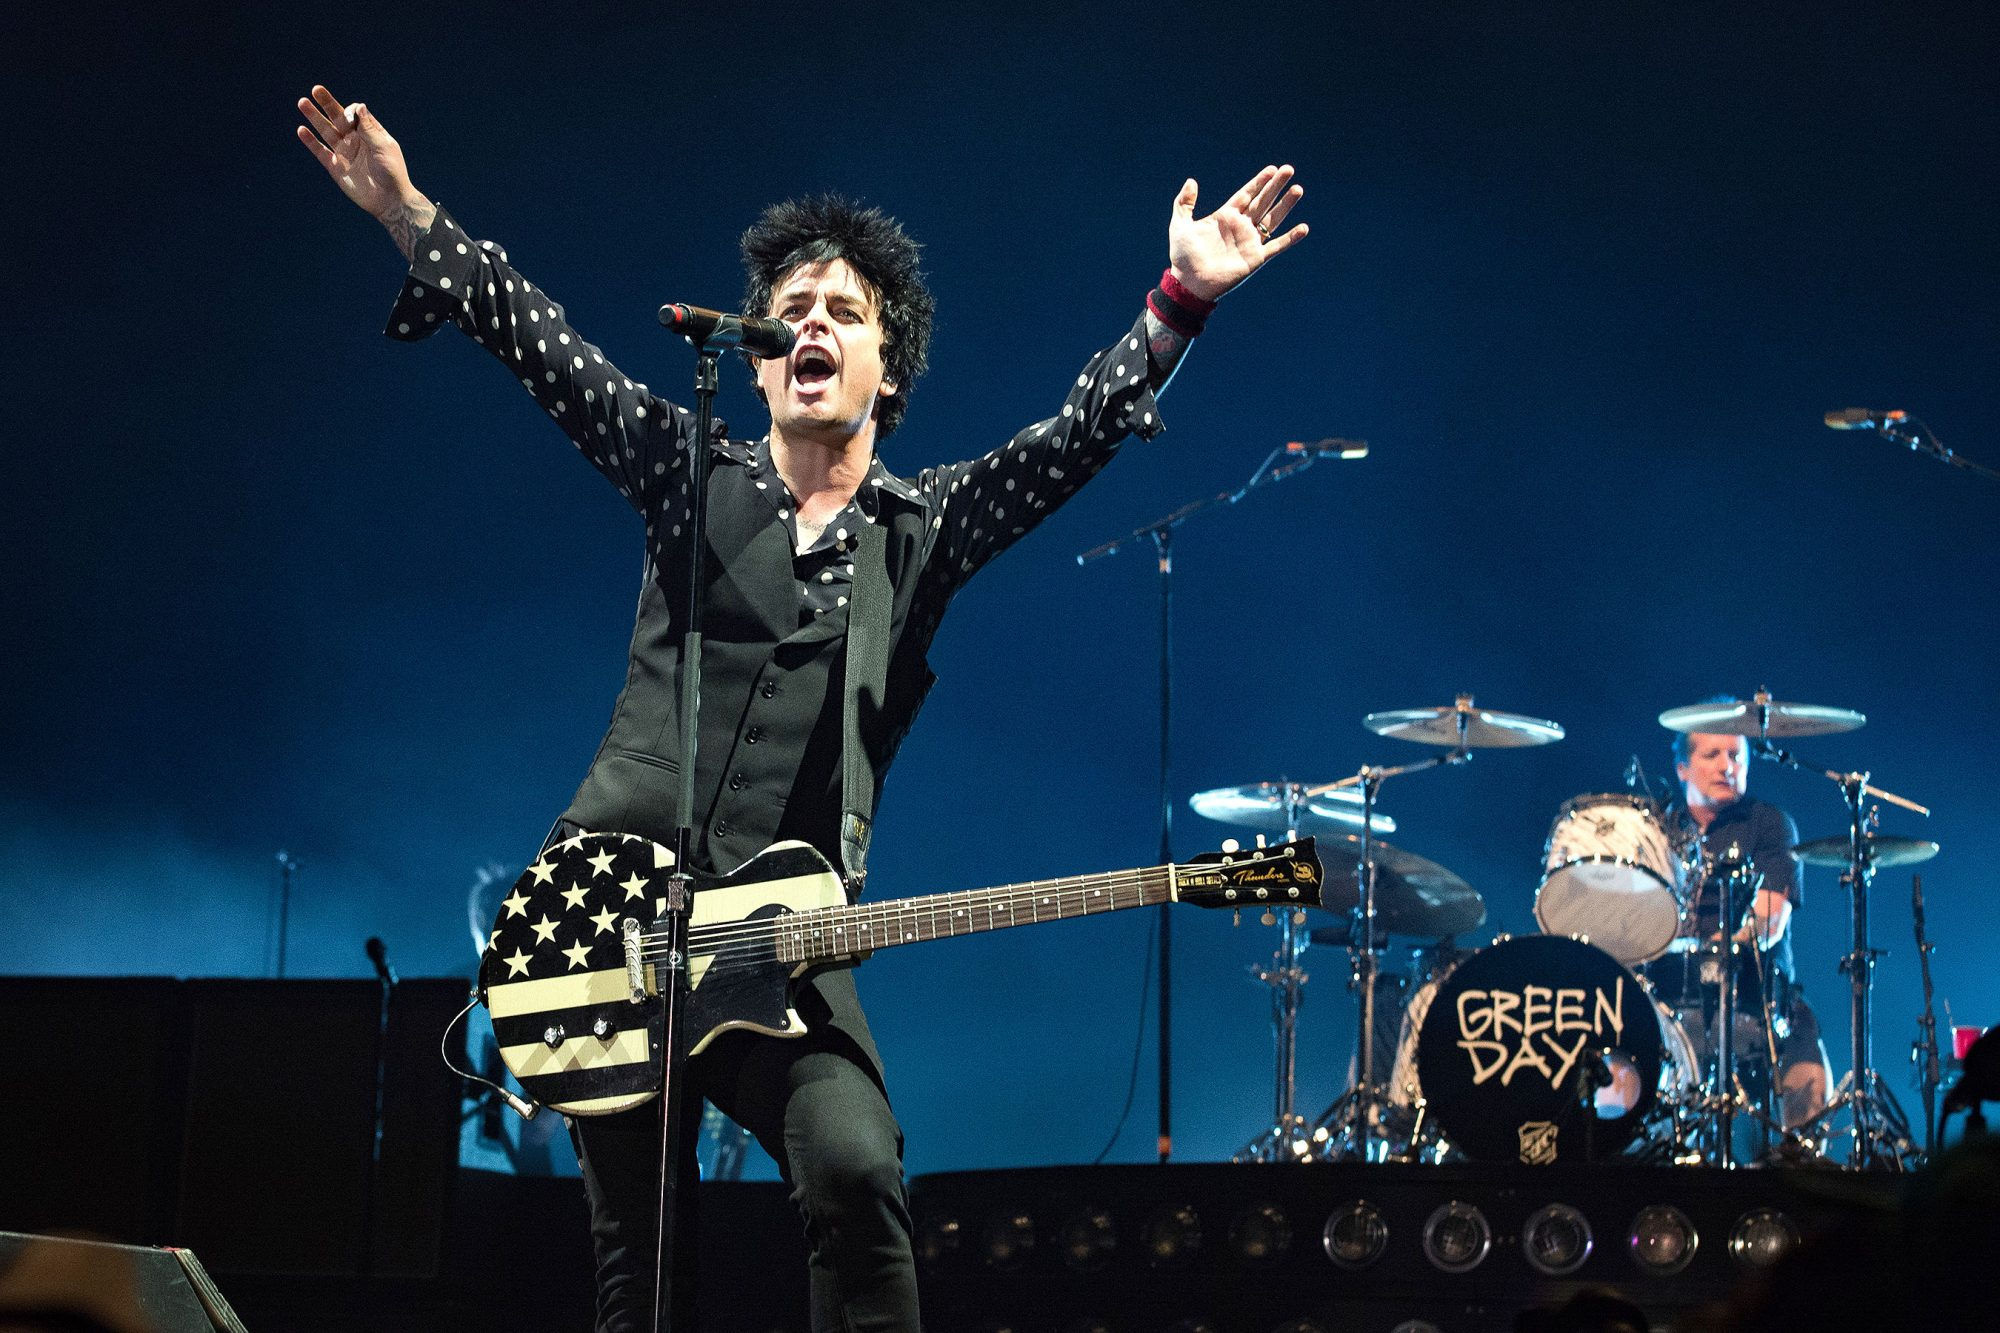 Green Day Perform at L'AccorHotels Arena In Paris